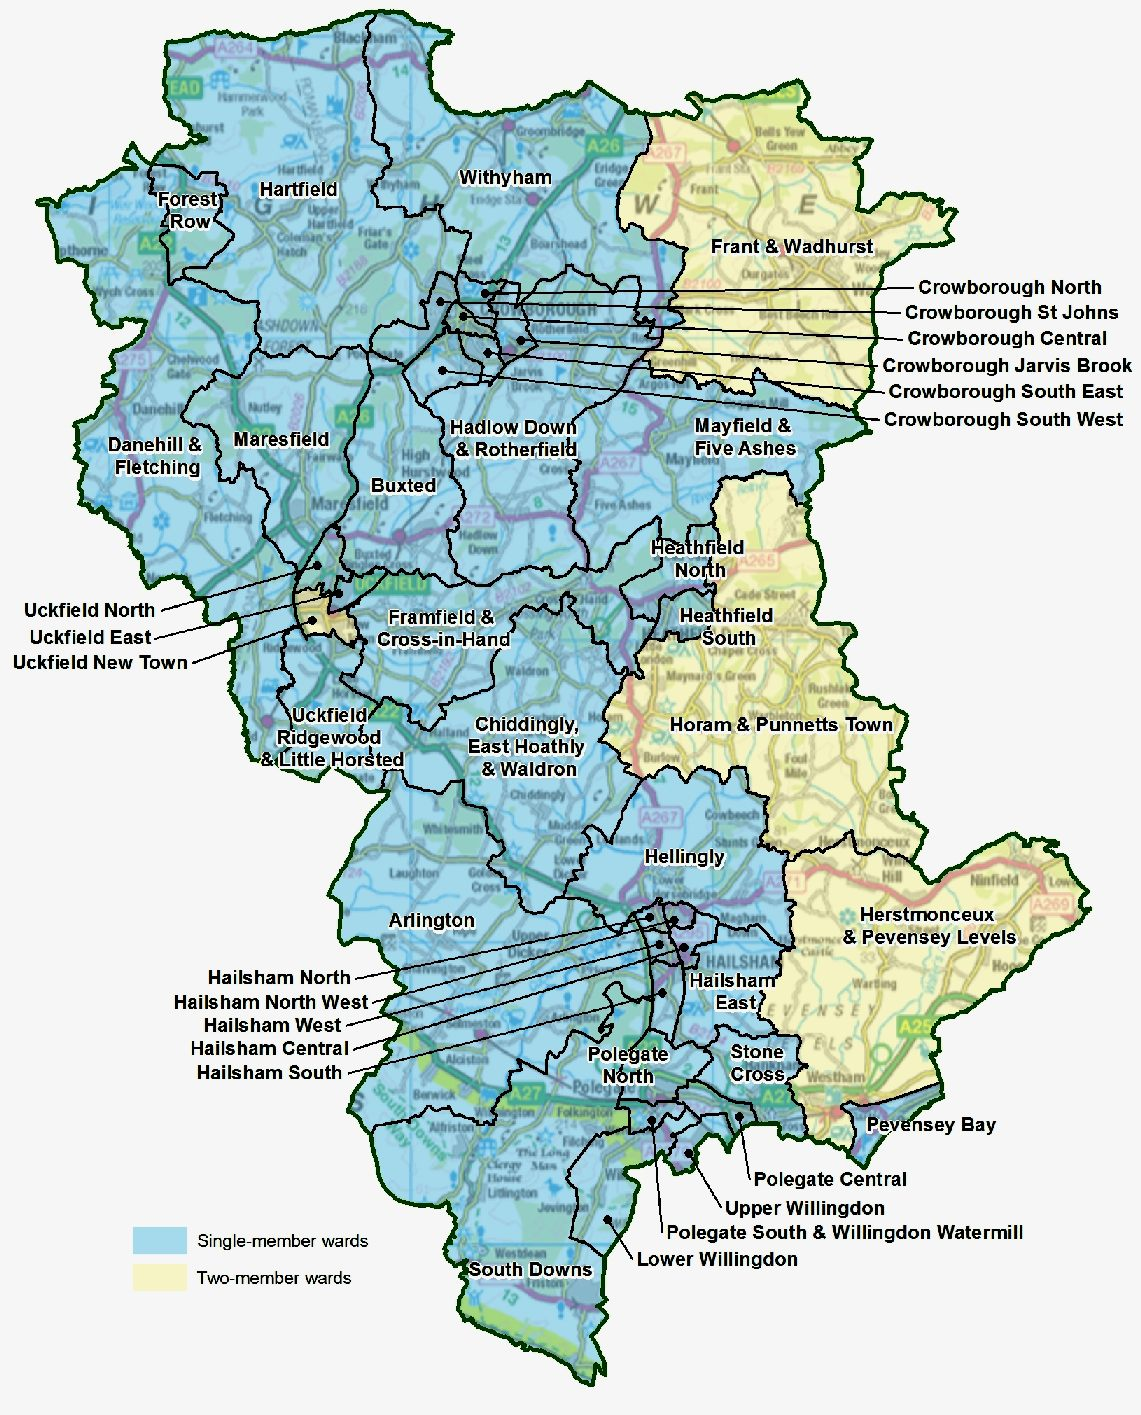 Map of the Wealden district as divided for effective representation of the people